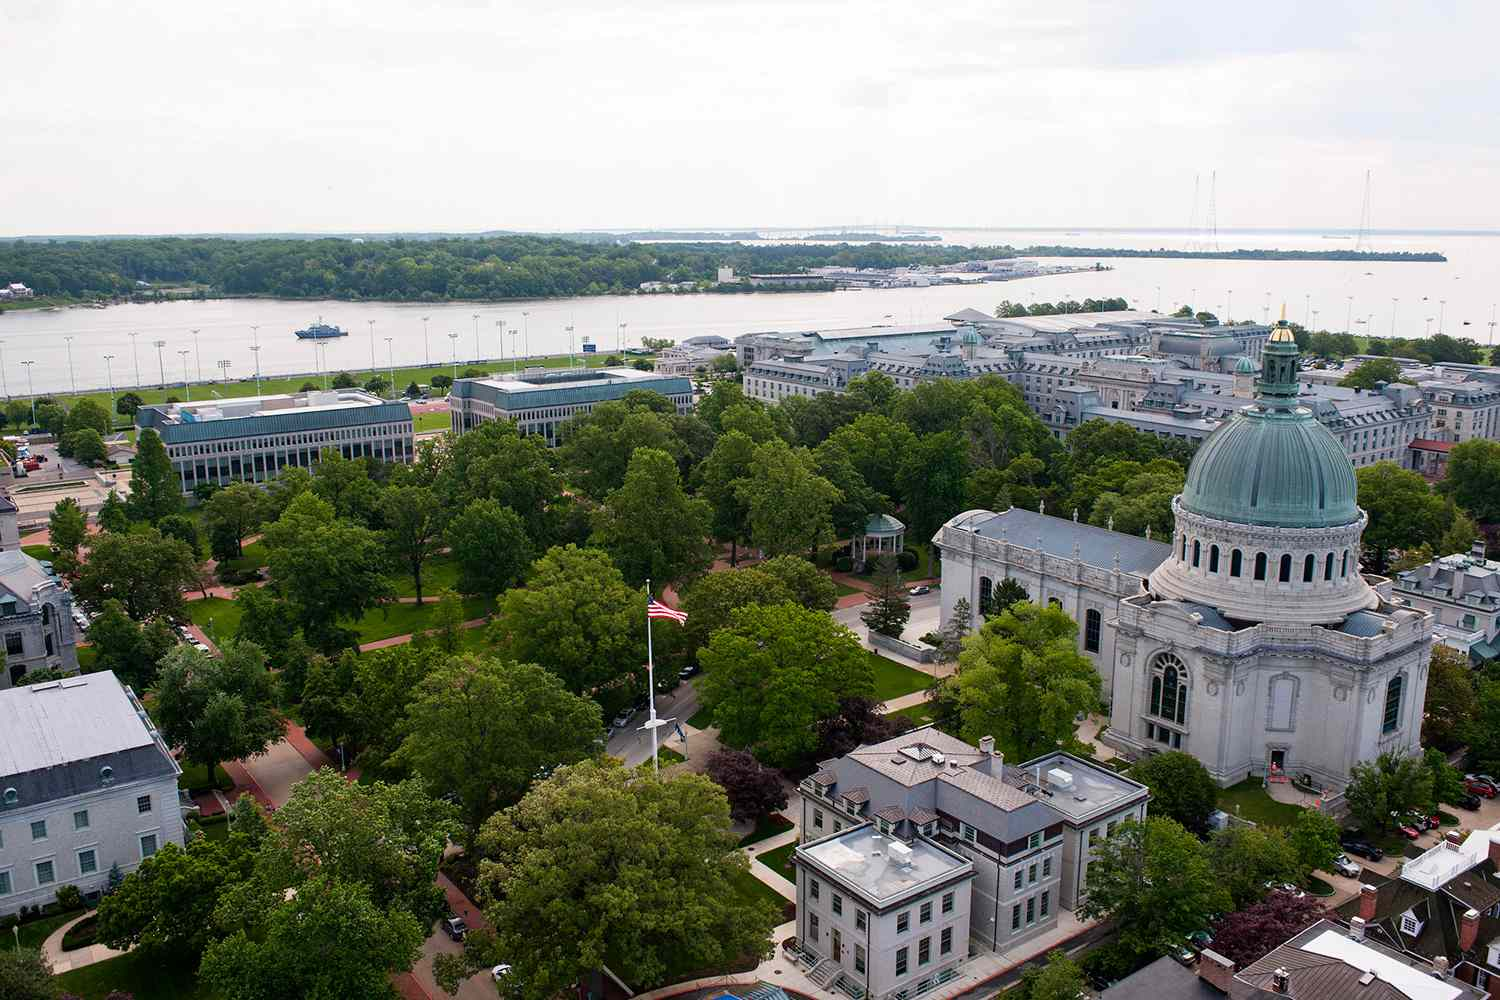 Aerial view of the U.S. Naval Academy